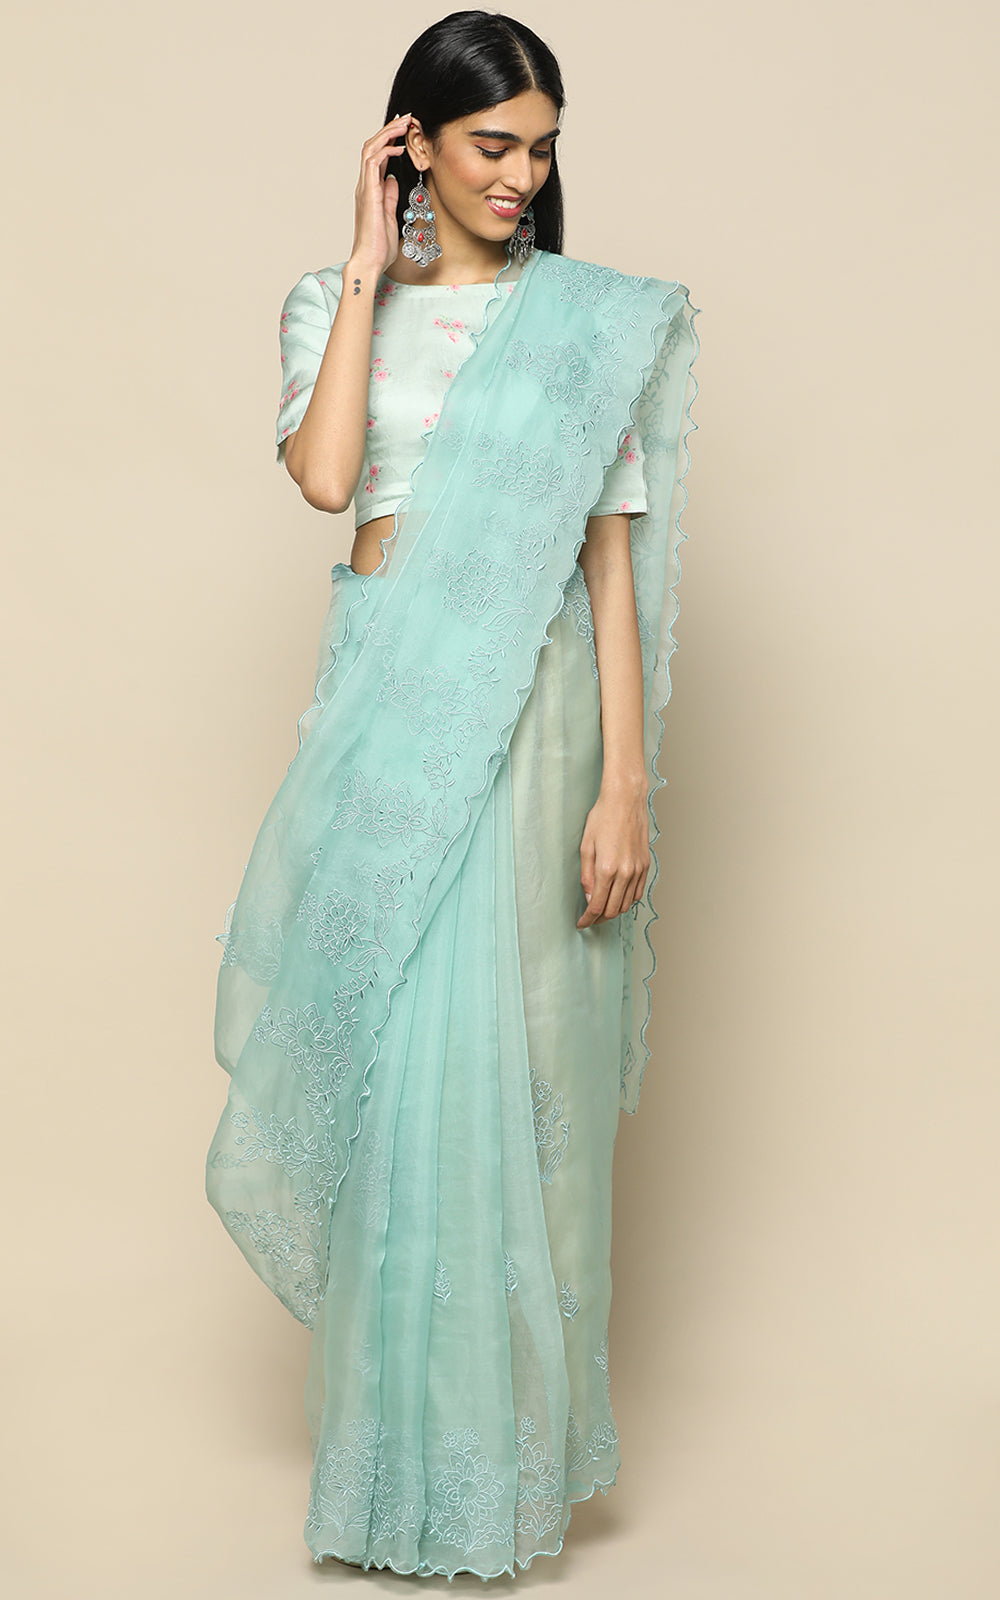 SEA BLUE ORGANZA  SILK SAREE WITH SELF COLOR EMBROIDERY